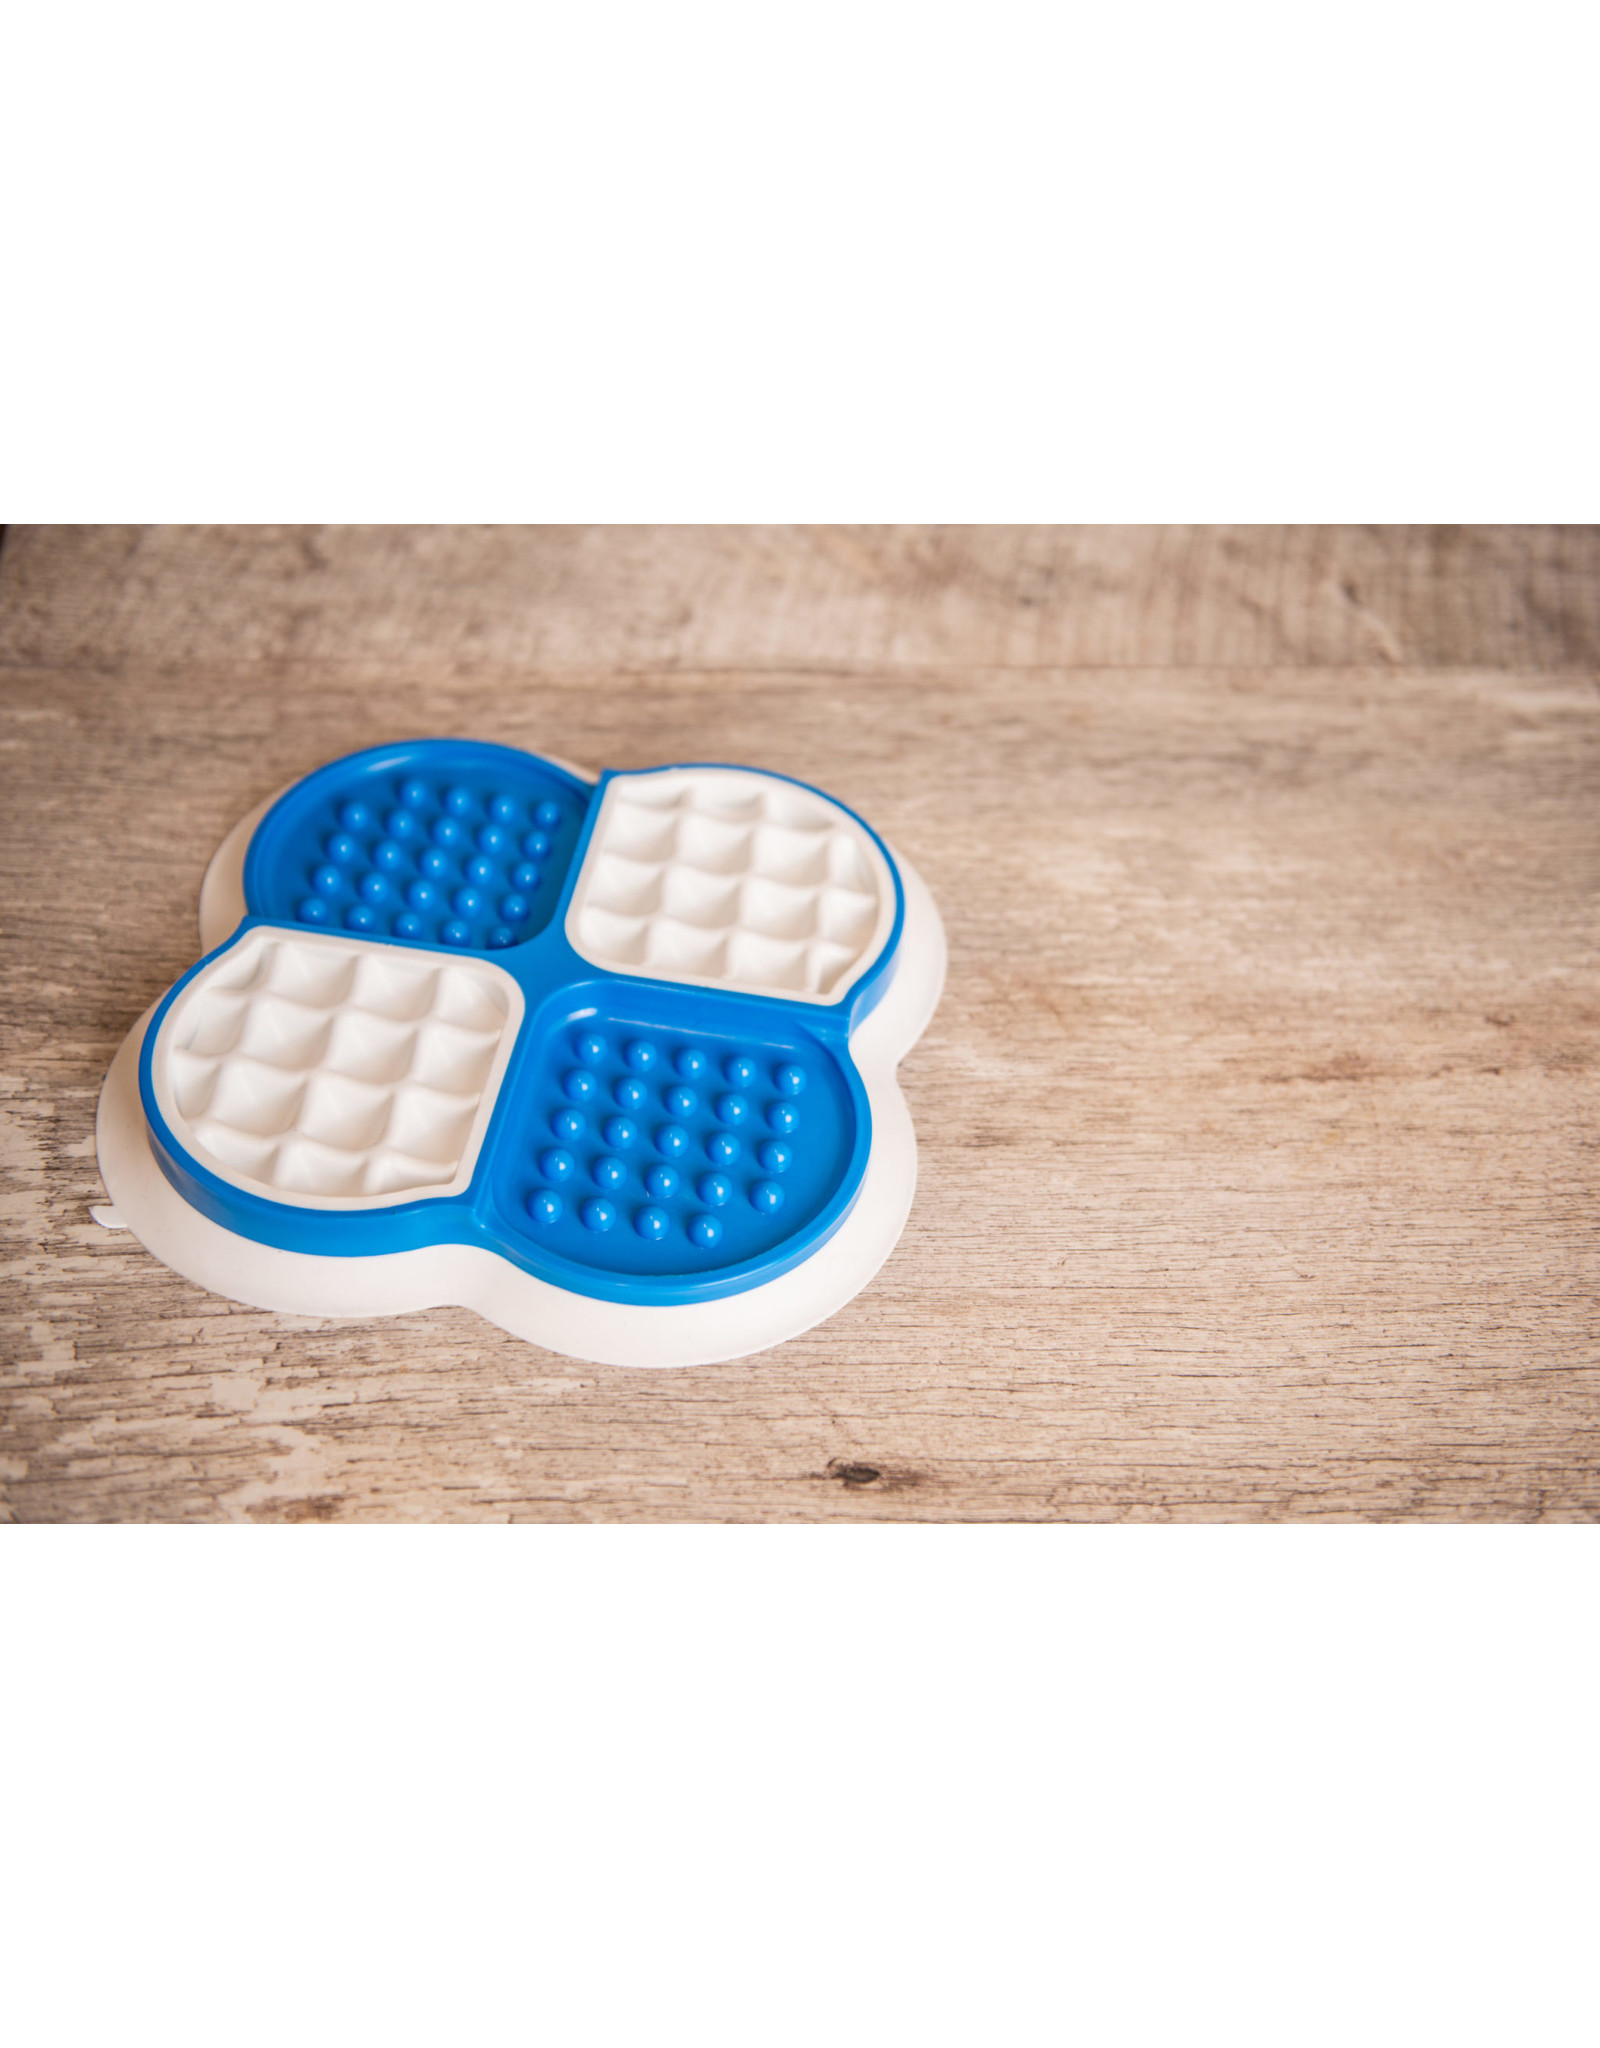 Big Country Raw Lick Tray - Blue/White